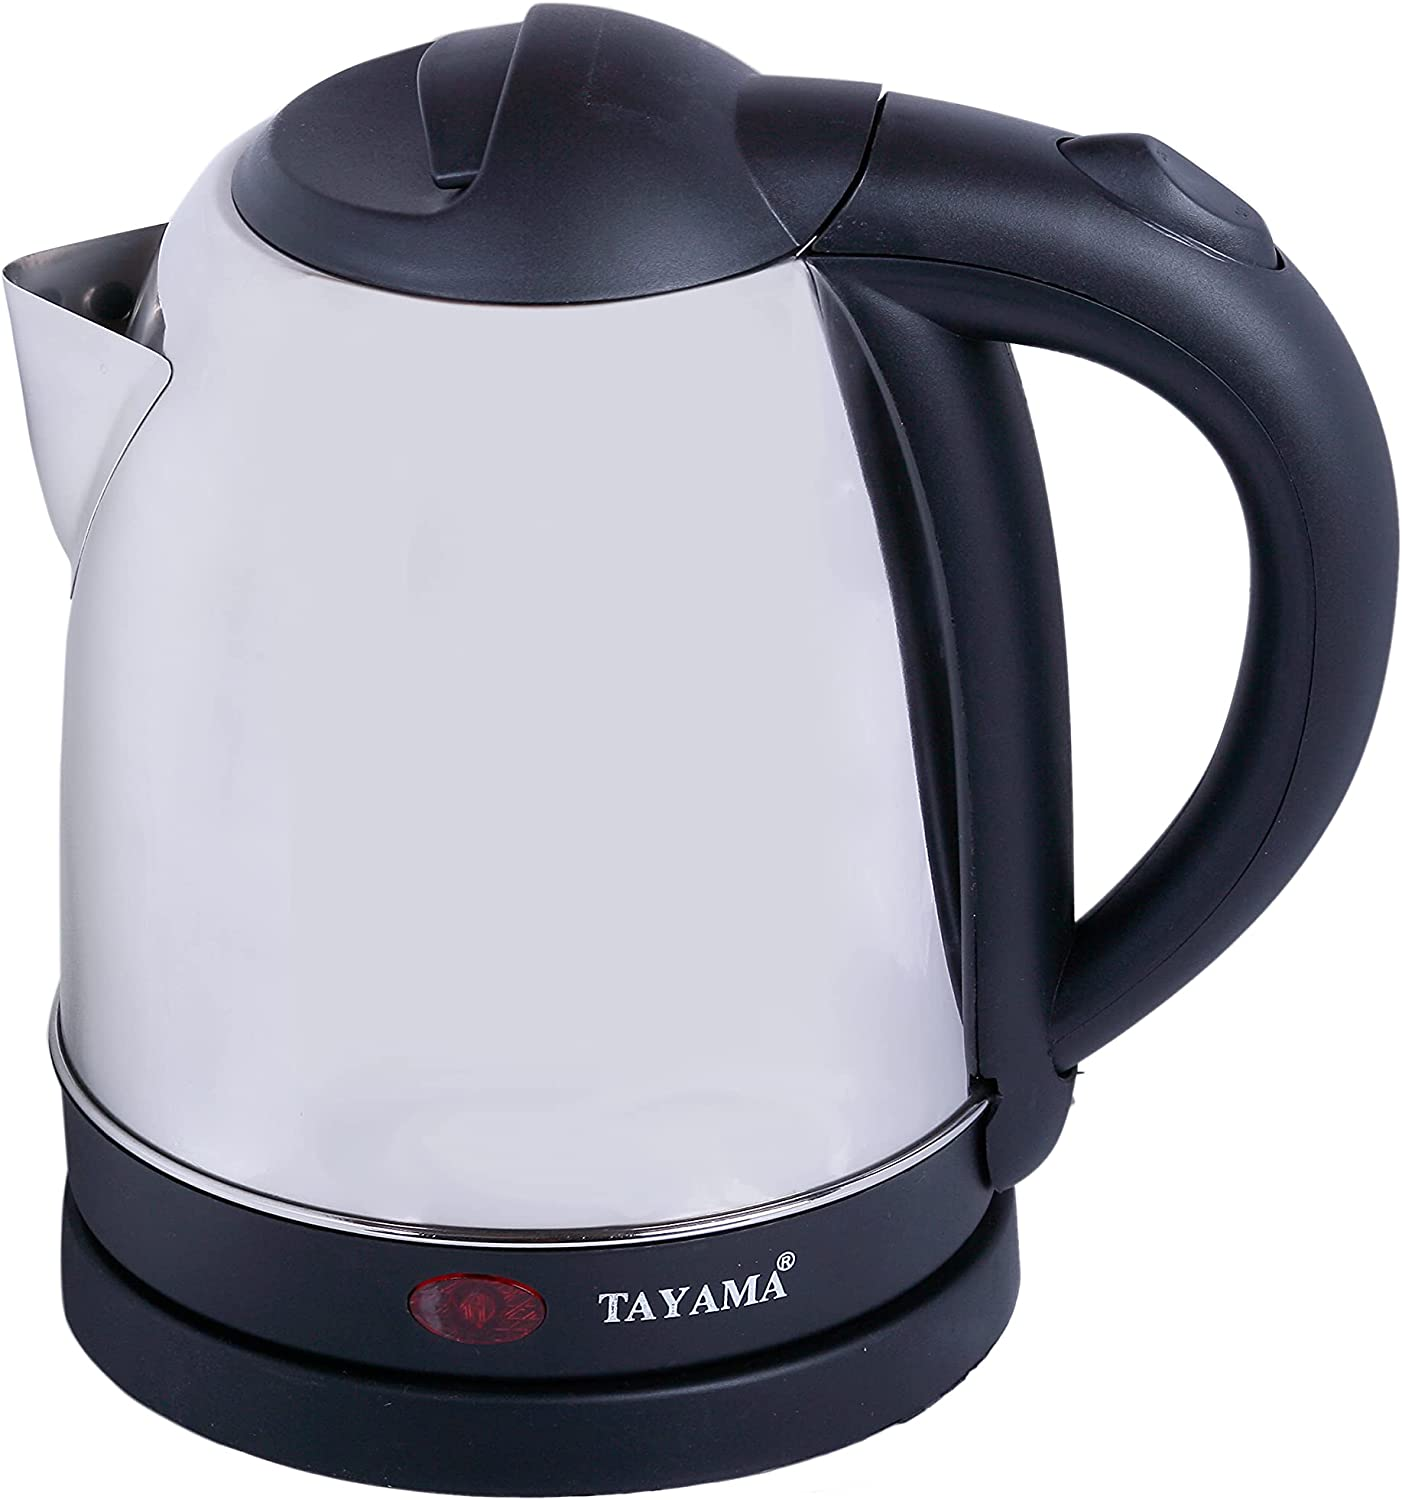 Tayama Stainless Popular popular Steel Electric Kettle BM-101 Inexpensive Liter 6-Cup 1.5